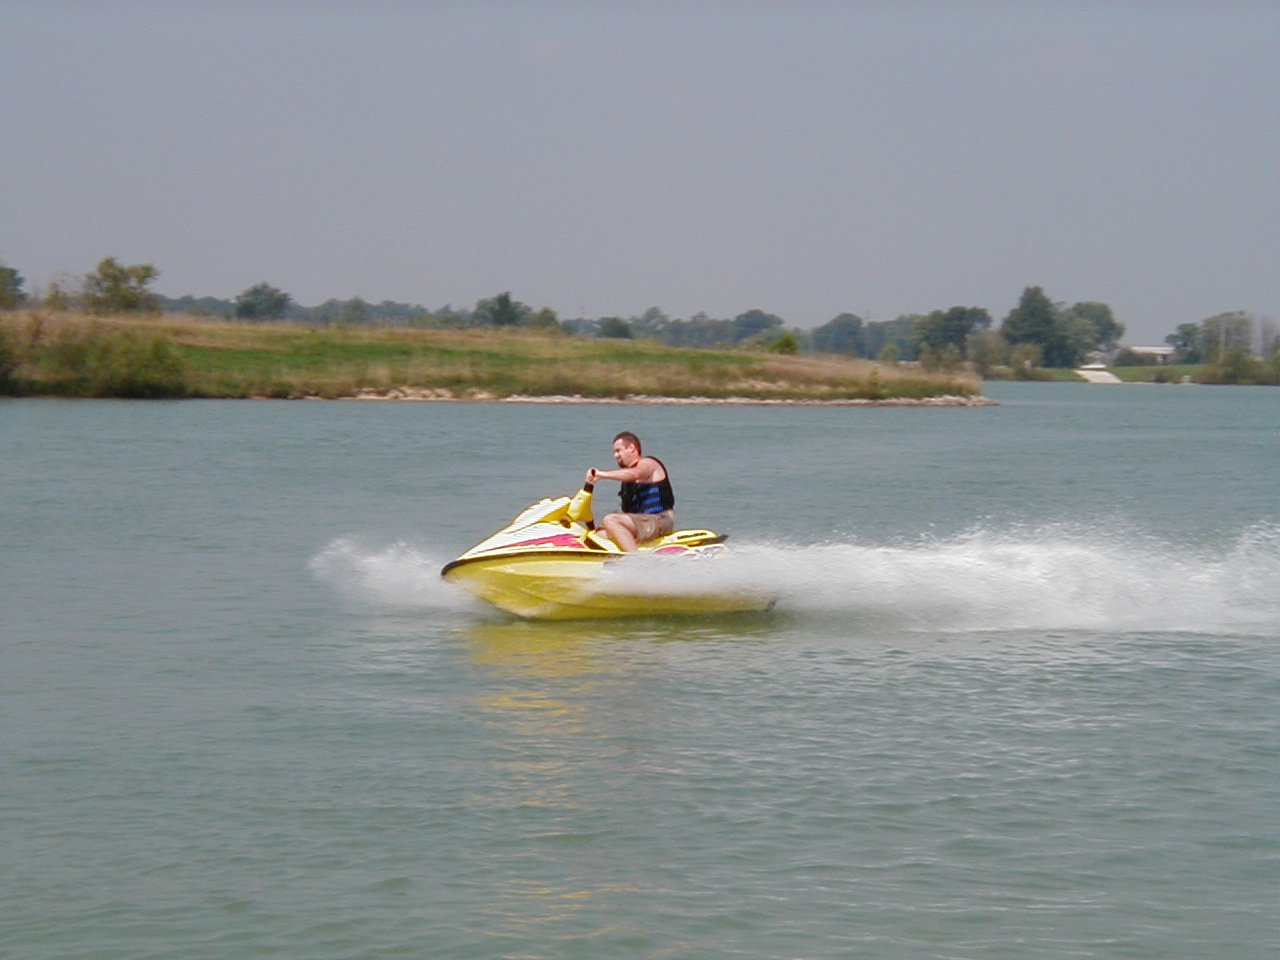 Gratis Jet Ski Free Jet Ski Stock Photo Freeimages